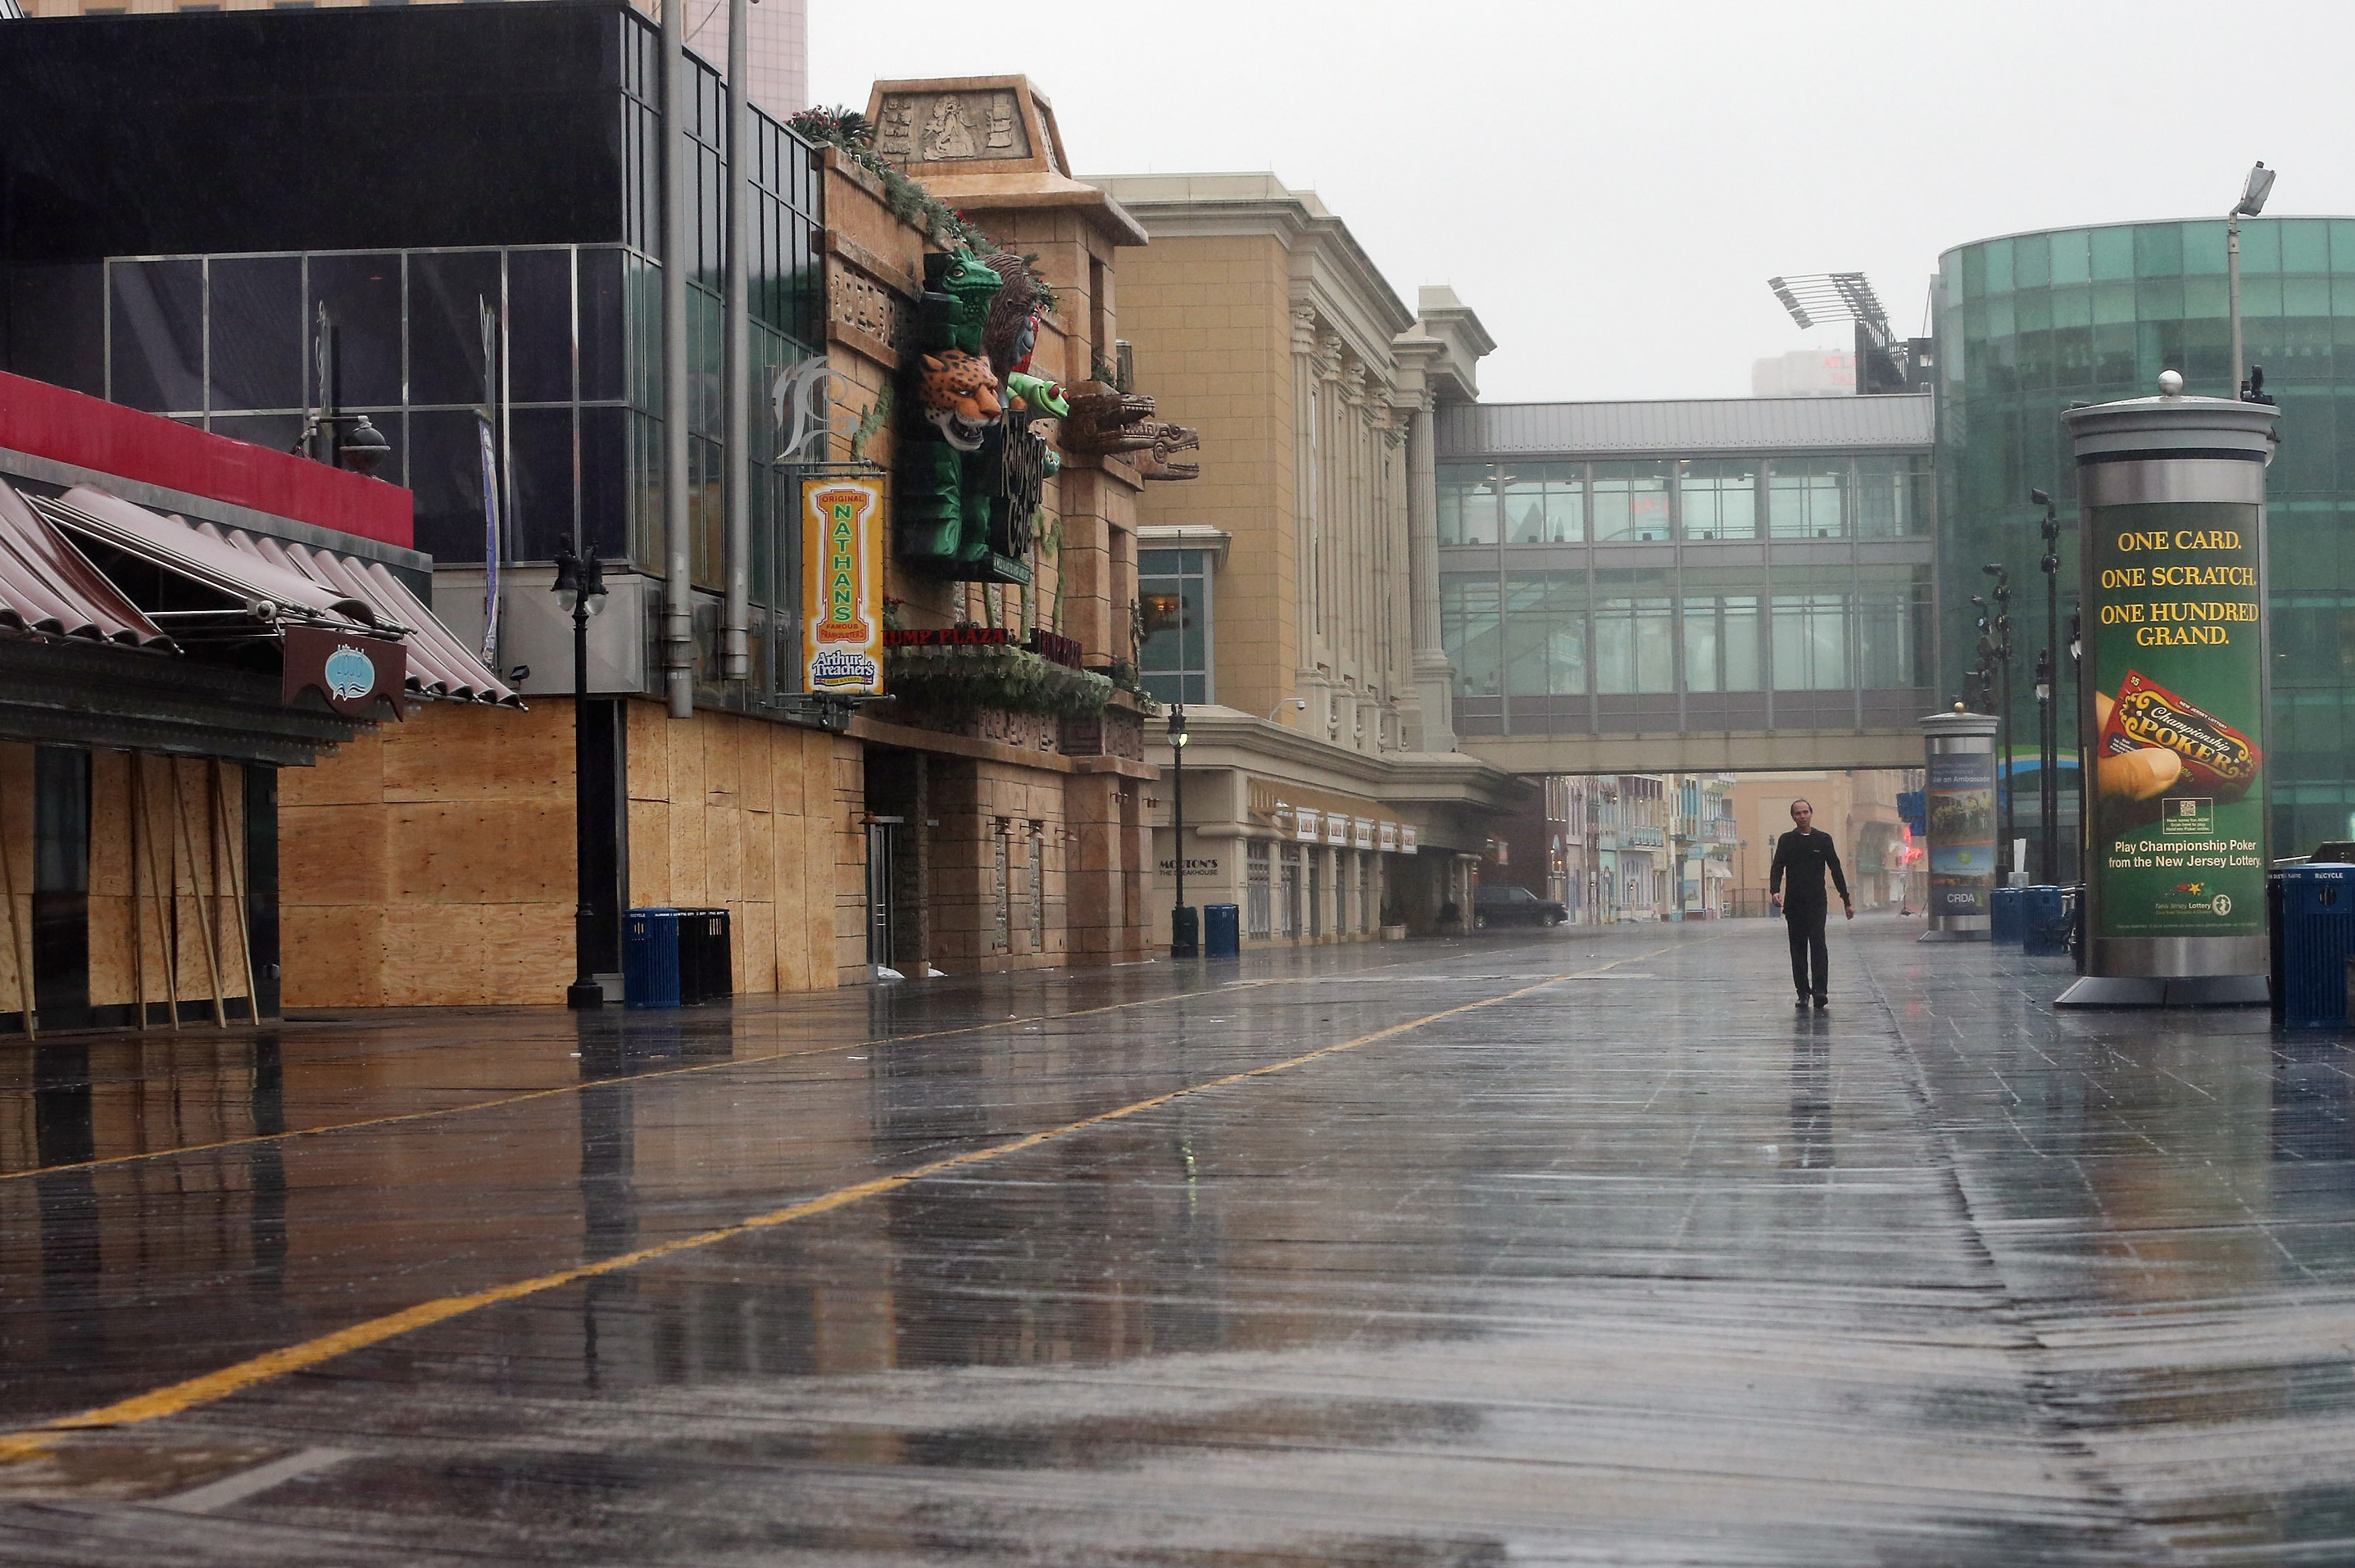 Buildings on the Atlantic City boardwalk are braced for Sandy. Gov. Chris Christie's emergency declaration is shutting down the city's casinos, and 30,000 residents are being told to evacuate.